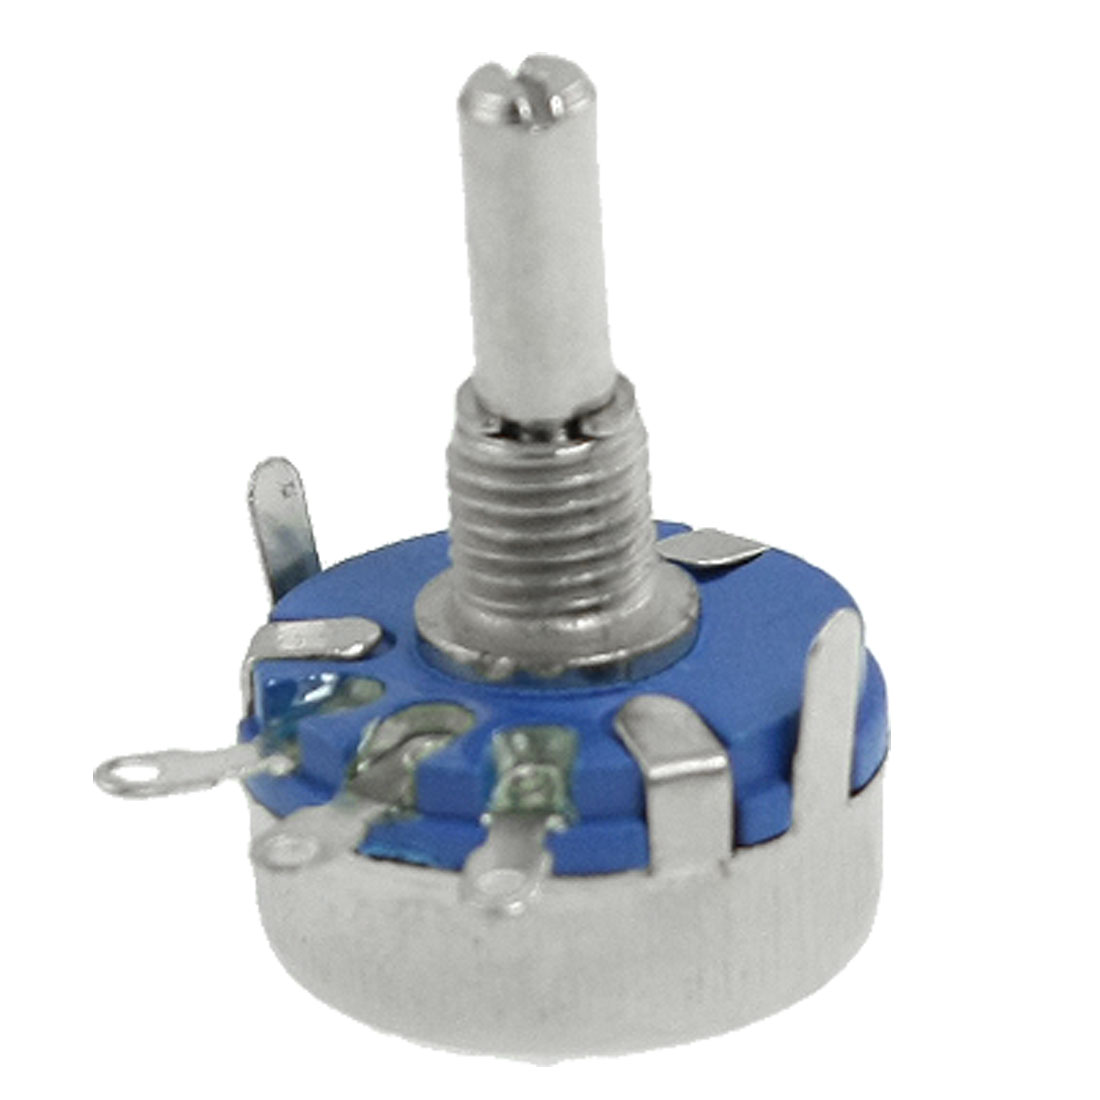 Replacement 4mm Shaft 1K Ohm Resistance Variable Resistor Potentiometer